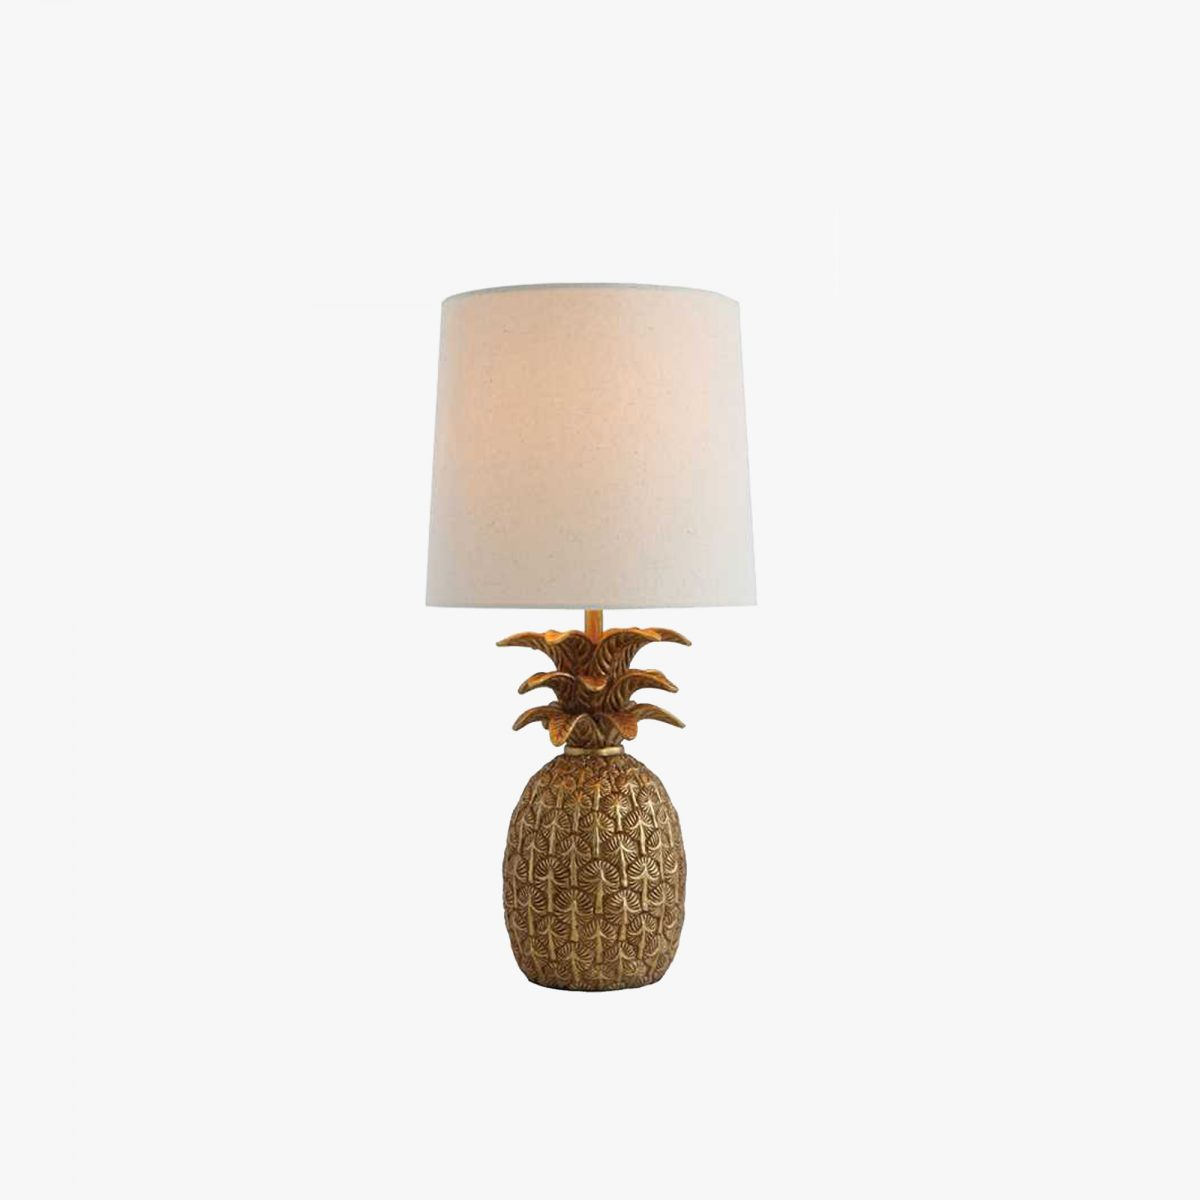 pair small pineapple table lamps dear keaton mini lamp accent high dining half moon mirrored entryway winsome white bedroom chair ikea floating shelves pottery barn wood desk wine